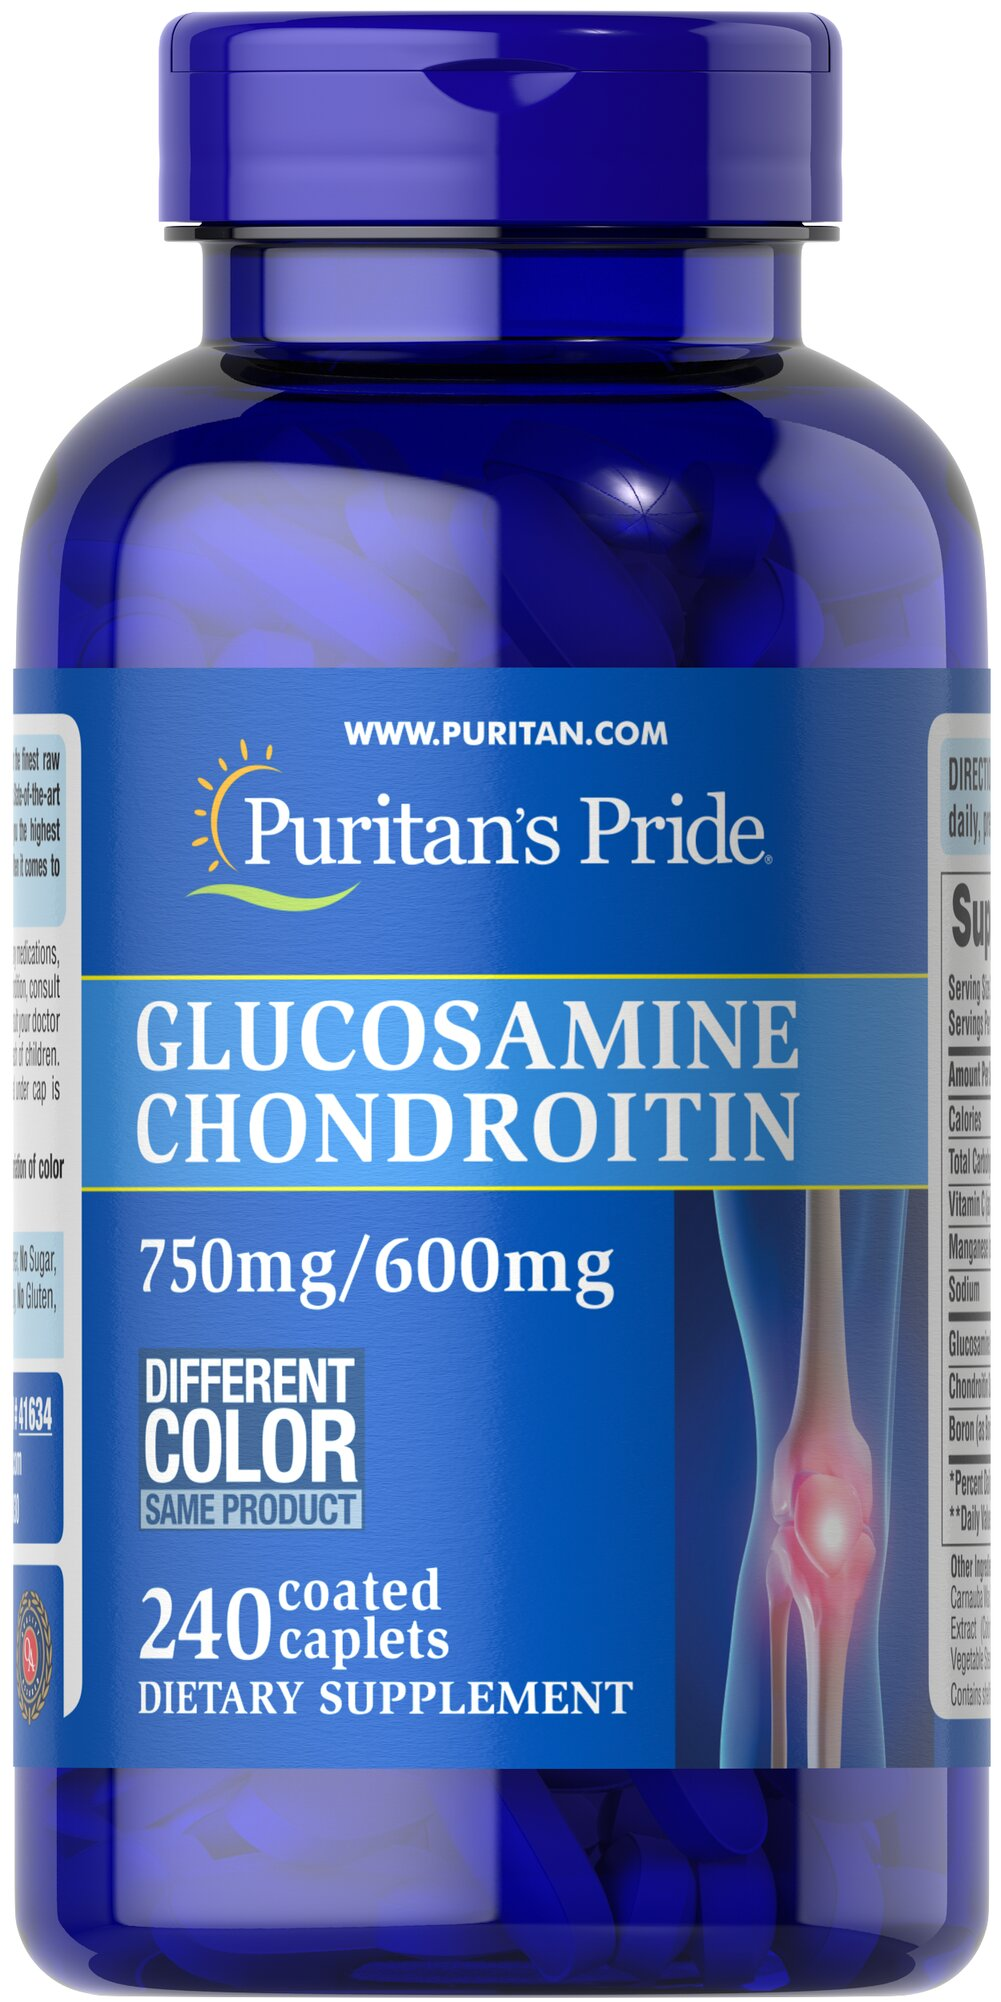 Triple Strength Glucosamine Chondroitin 750 mg/600 mg <p>Glucosamine is a key structural component in cartilage and acts as a lubricant**</p><p>Chondroitin acts as a lubricant and is an important molecular component of glycosaminoglycans**</p><p>One serving of Triple Strength Glucosamine Chondroitin helps promote comfortable joint movement and two caplets provide 1500 mg Glucosamine and 1200 mg Chondroitin.</p> 240 Caplets 750 mg/600 mg $89.99